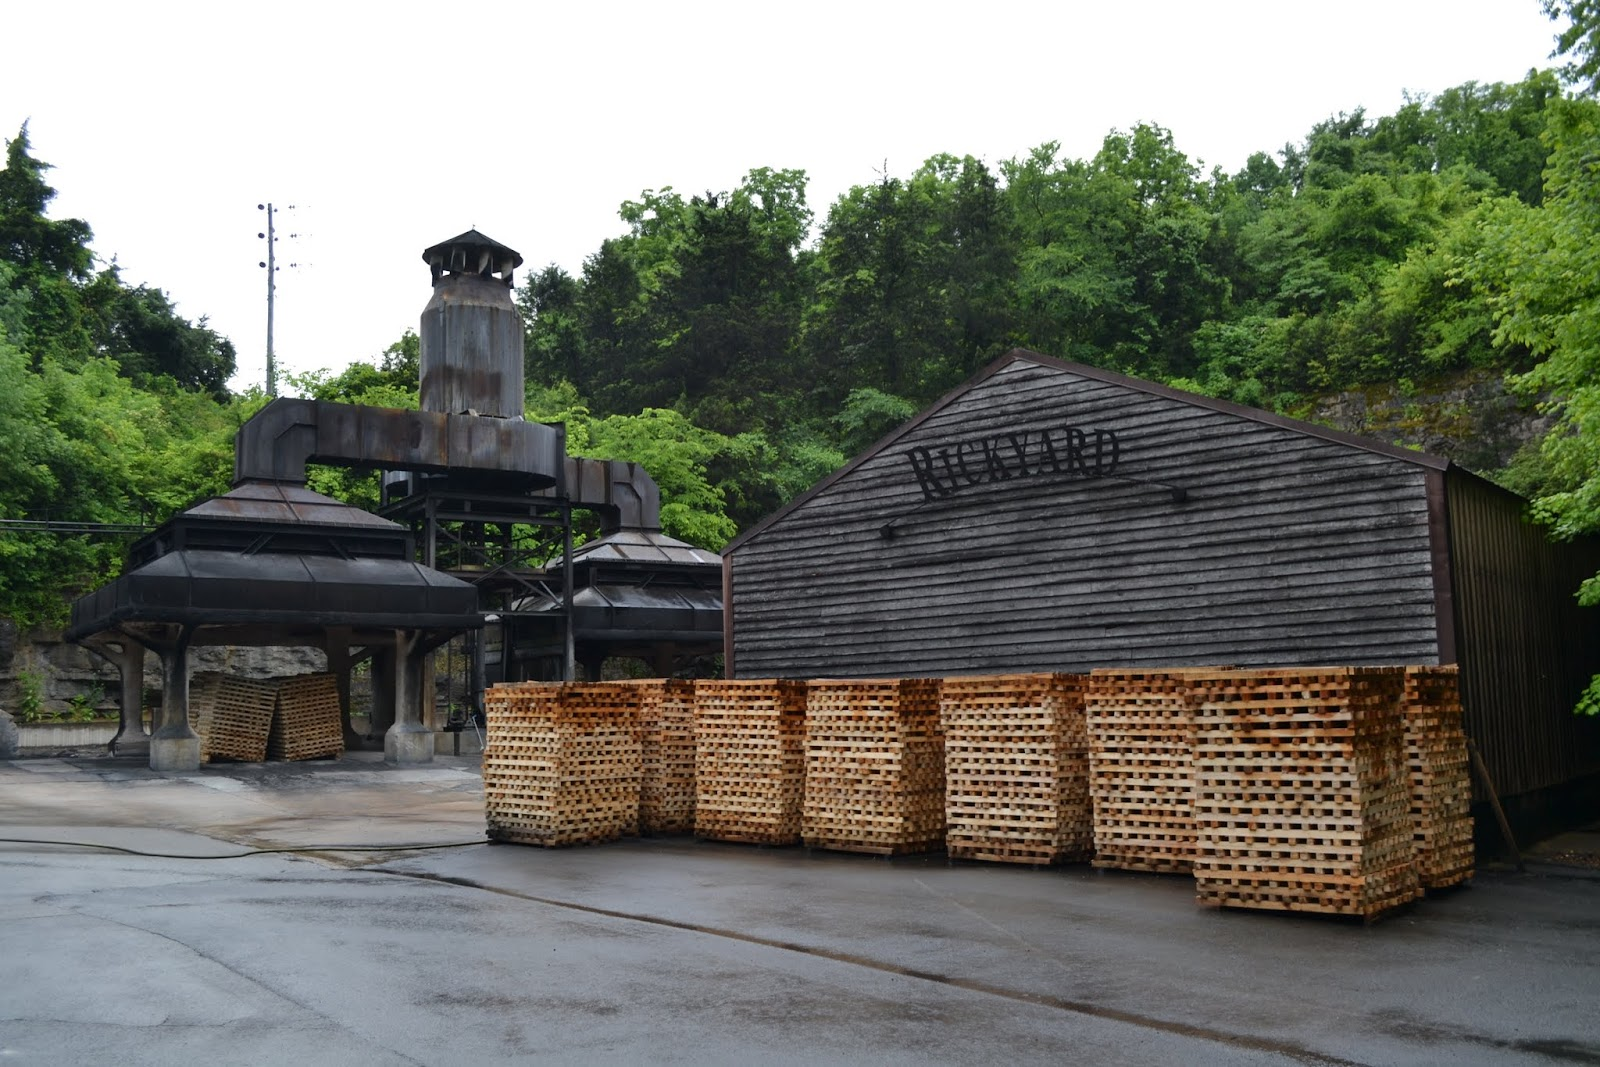 Винокурня Jack Daniel's, Линчберг, штат Теннесси (Jack Daniel's Distillery Visitor Center, Lynchburg, TN)